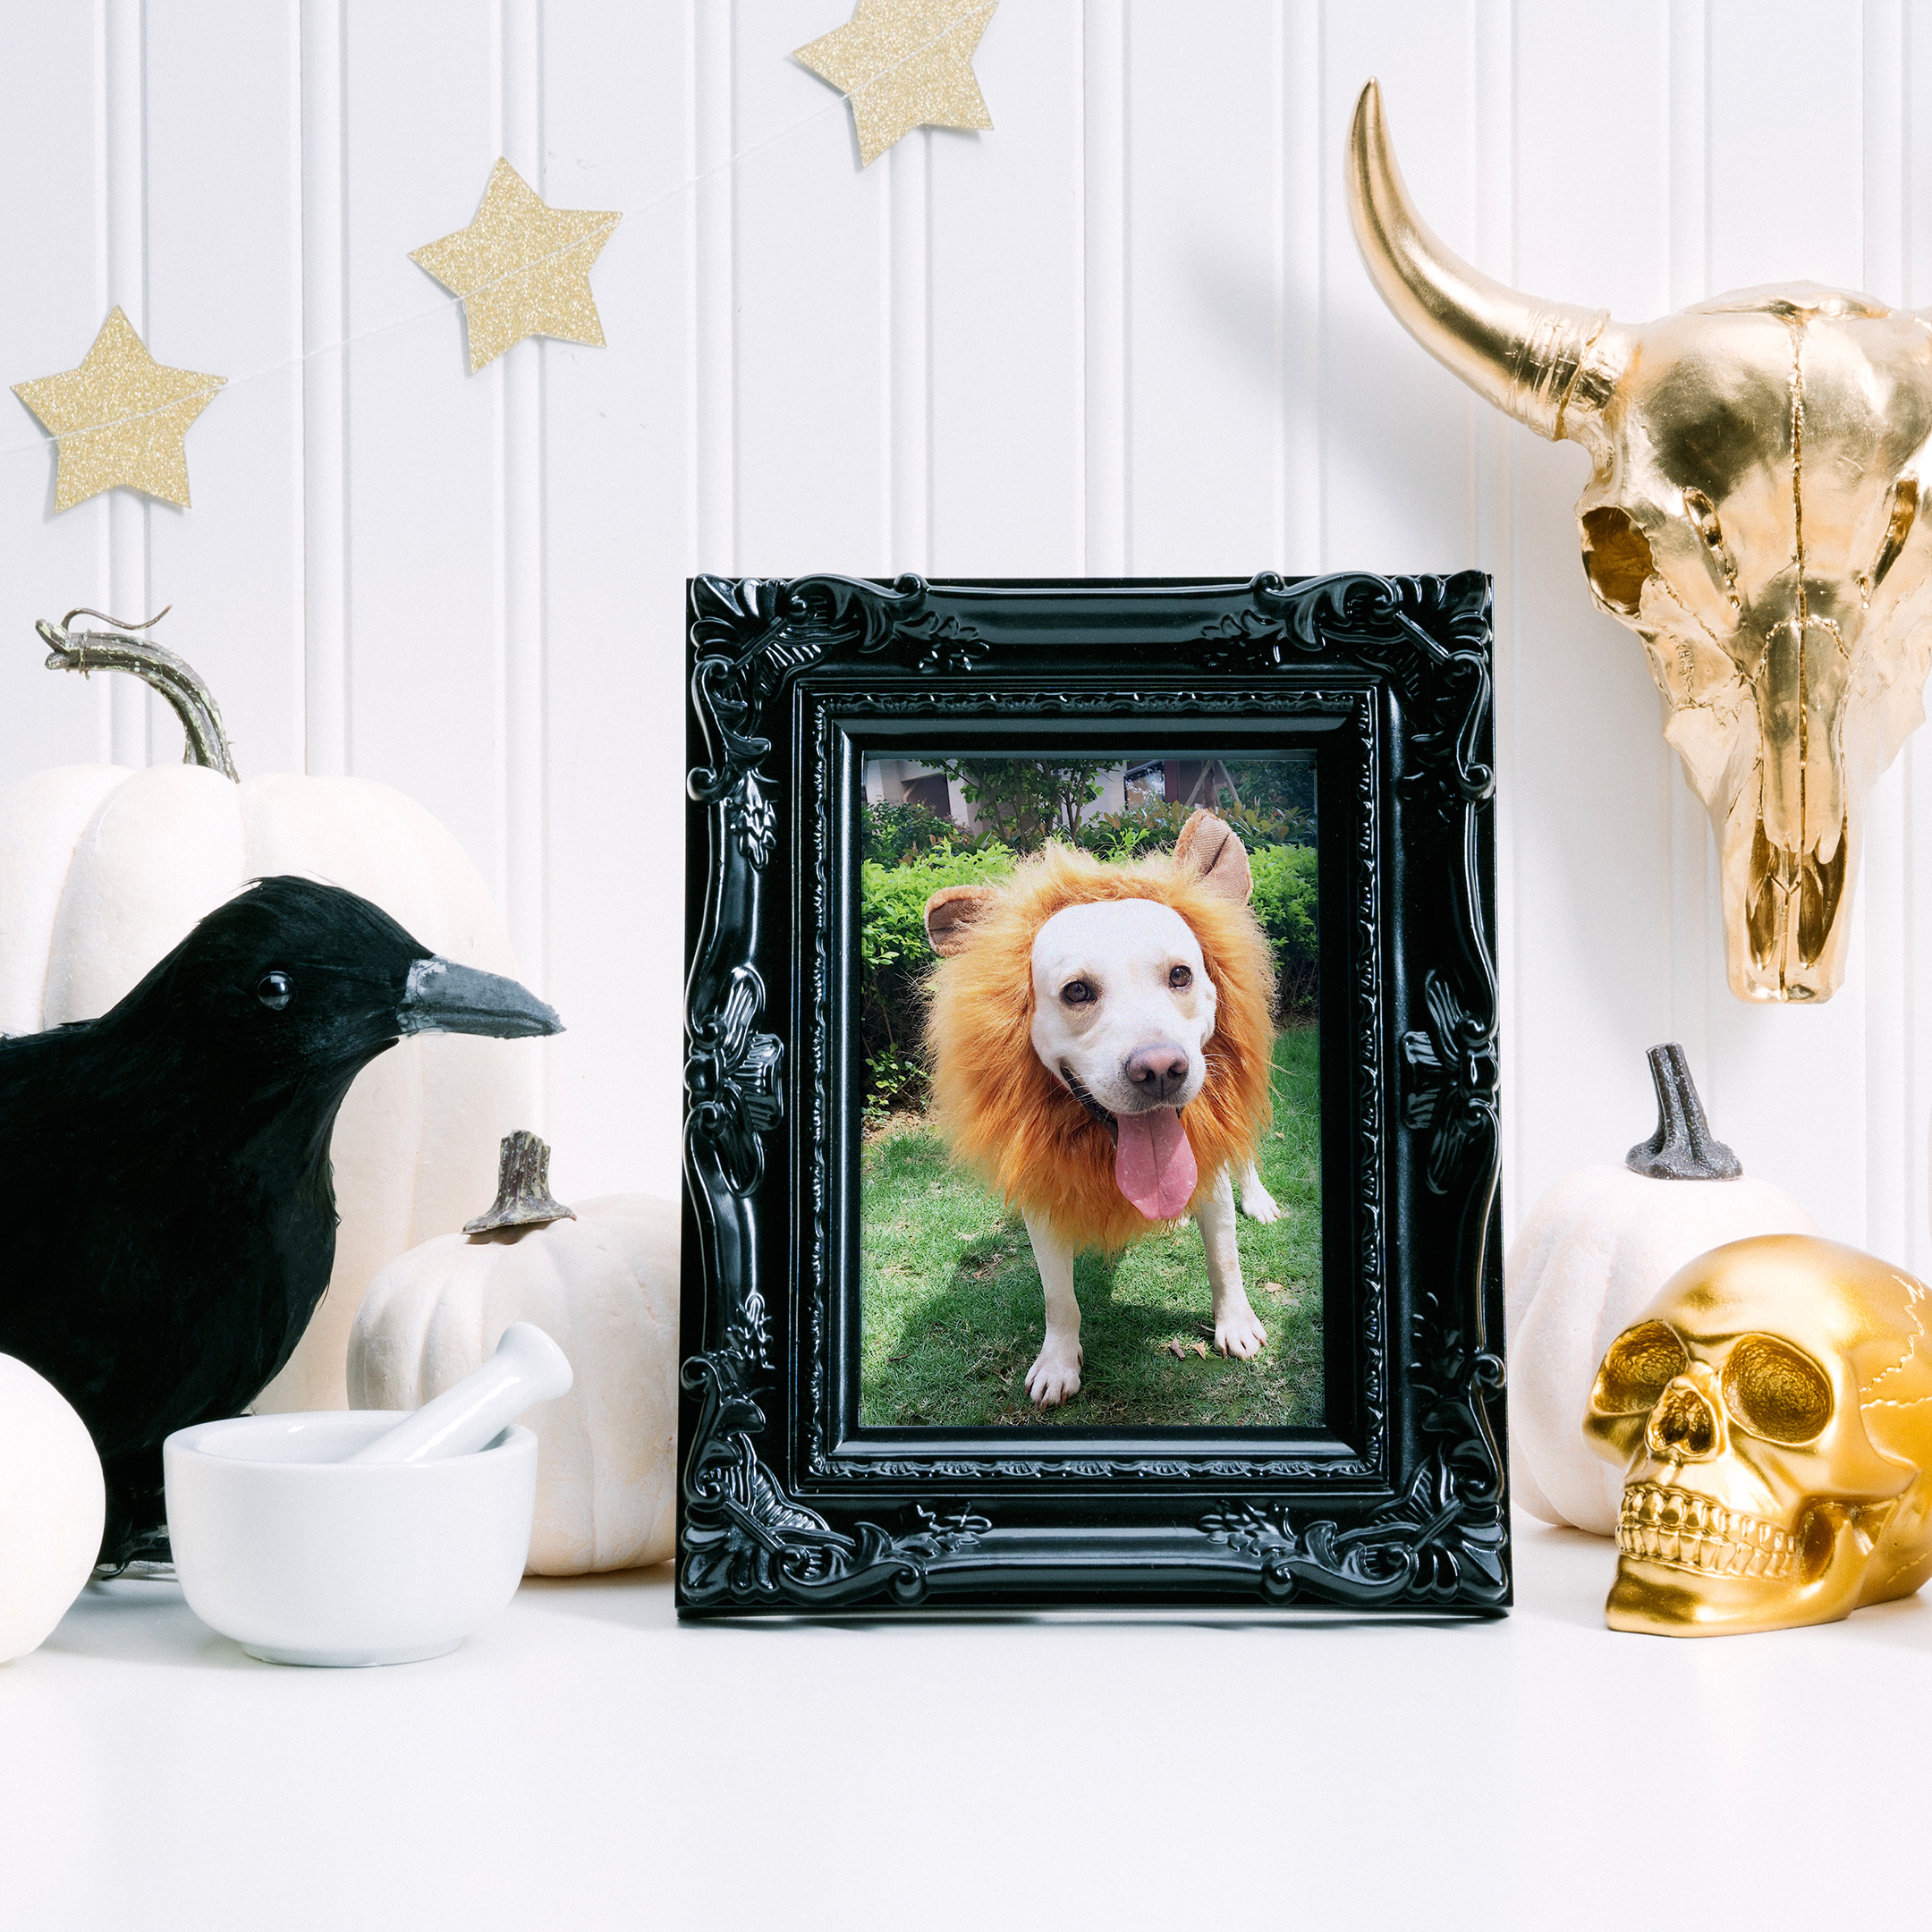 BROADSWORD_HALLOWEEN_FACEON_1x1_CHIC_COSTUMES_BLACKFRAME_LIFESTYLE_PETS_DOGS_B072JF1VGX